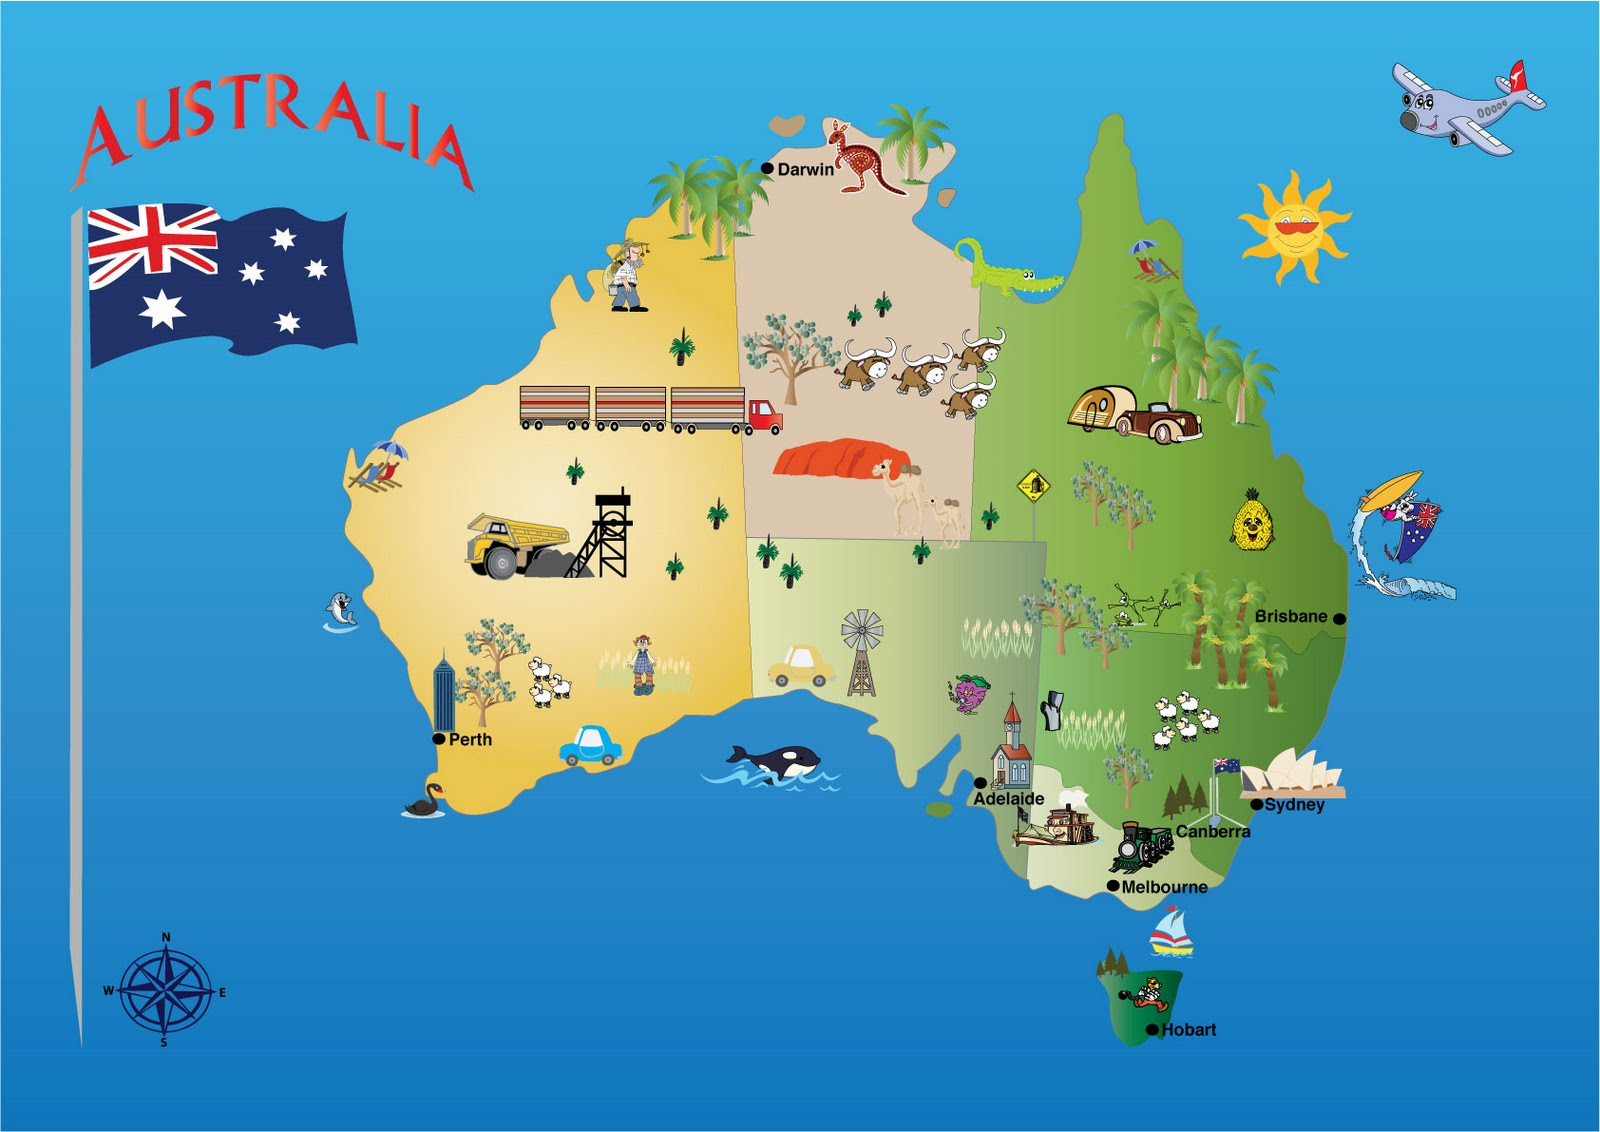 Australian map  flag and country facts Map of Australia  courtesy of Michelle s Creative Blog   http   kindofcreative